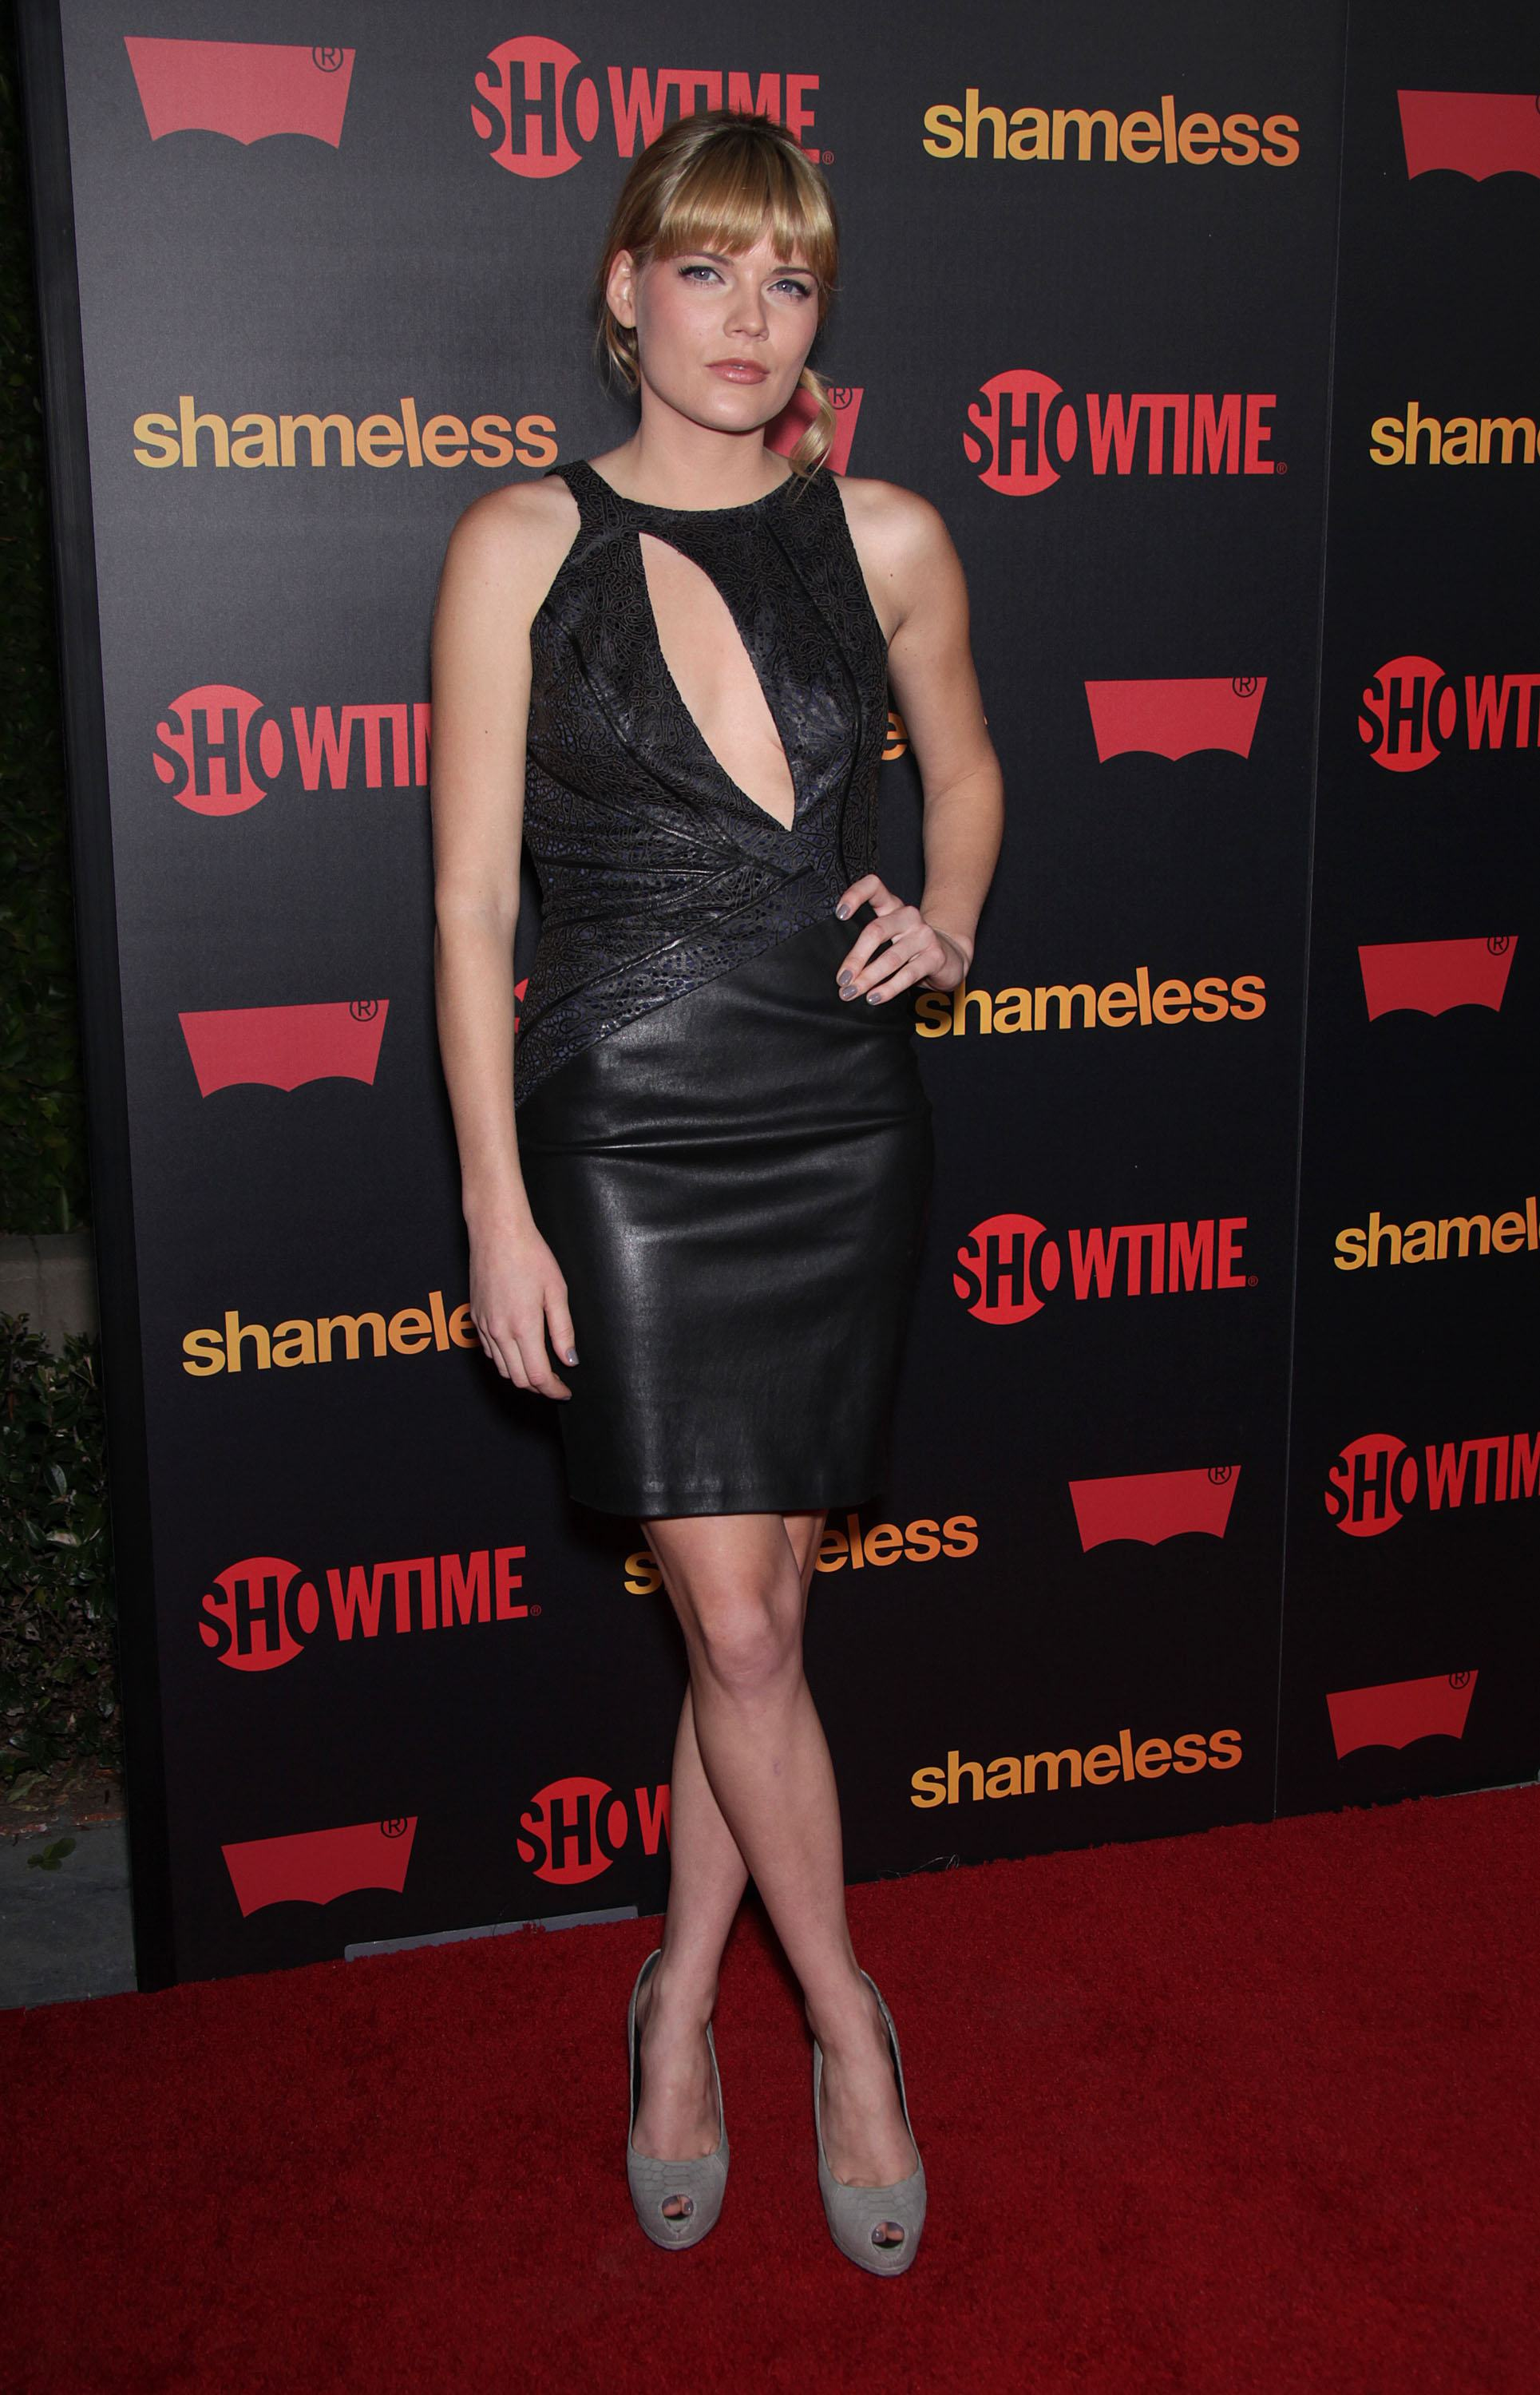 225062424_emma_greenwell_promoting_season_2_premiere_shameless_wearing_black_dress_emma_greenwell_promoting_season_2_premiere_shameless07_123_431lo.jpg